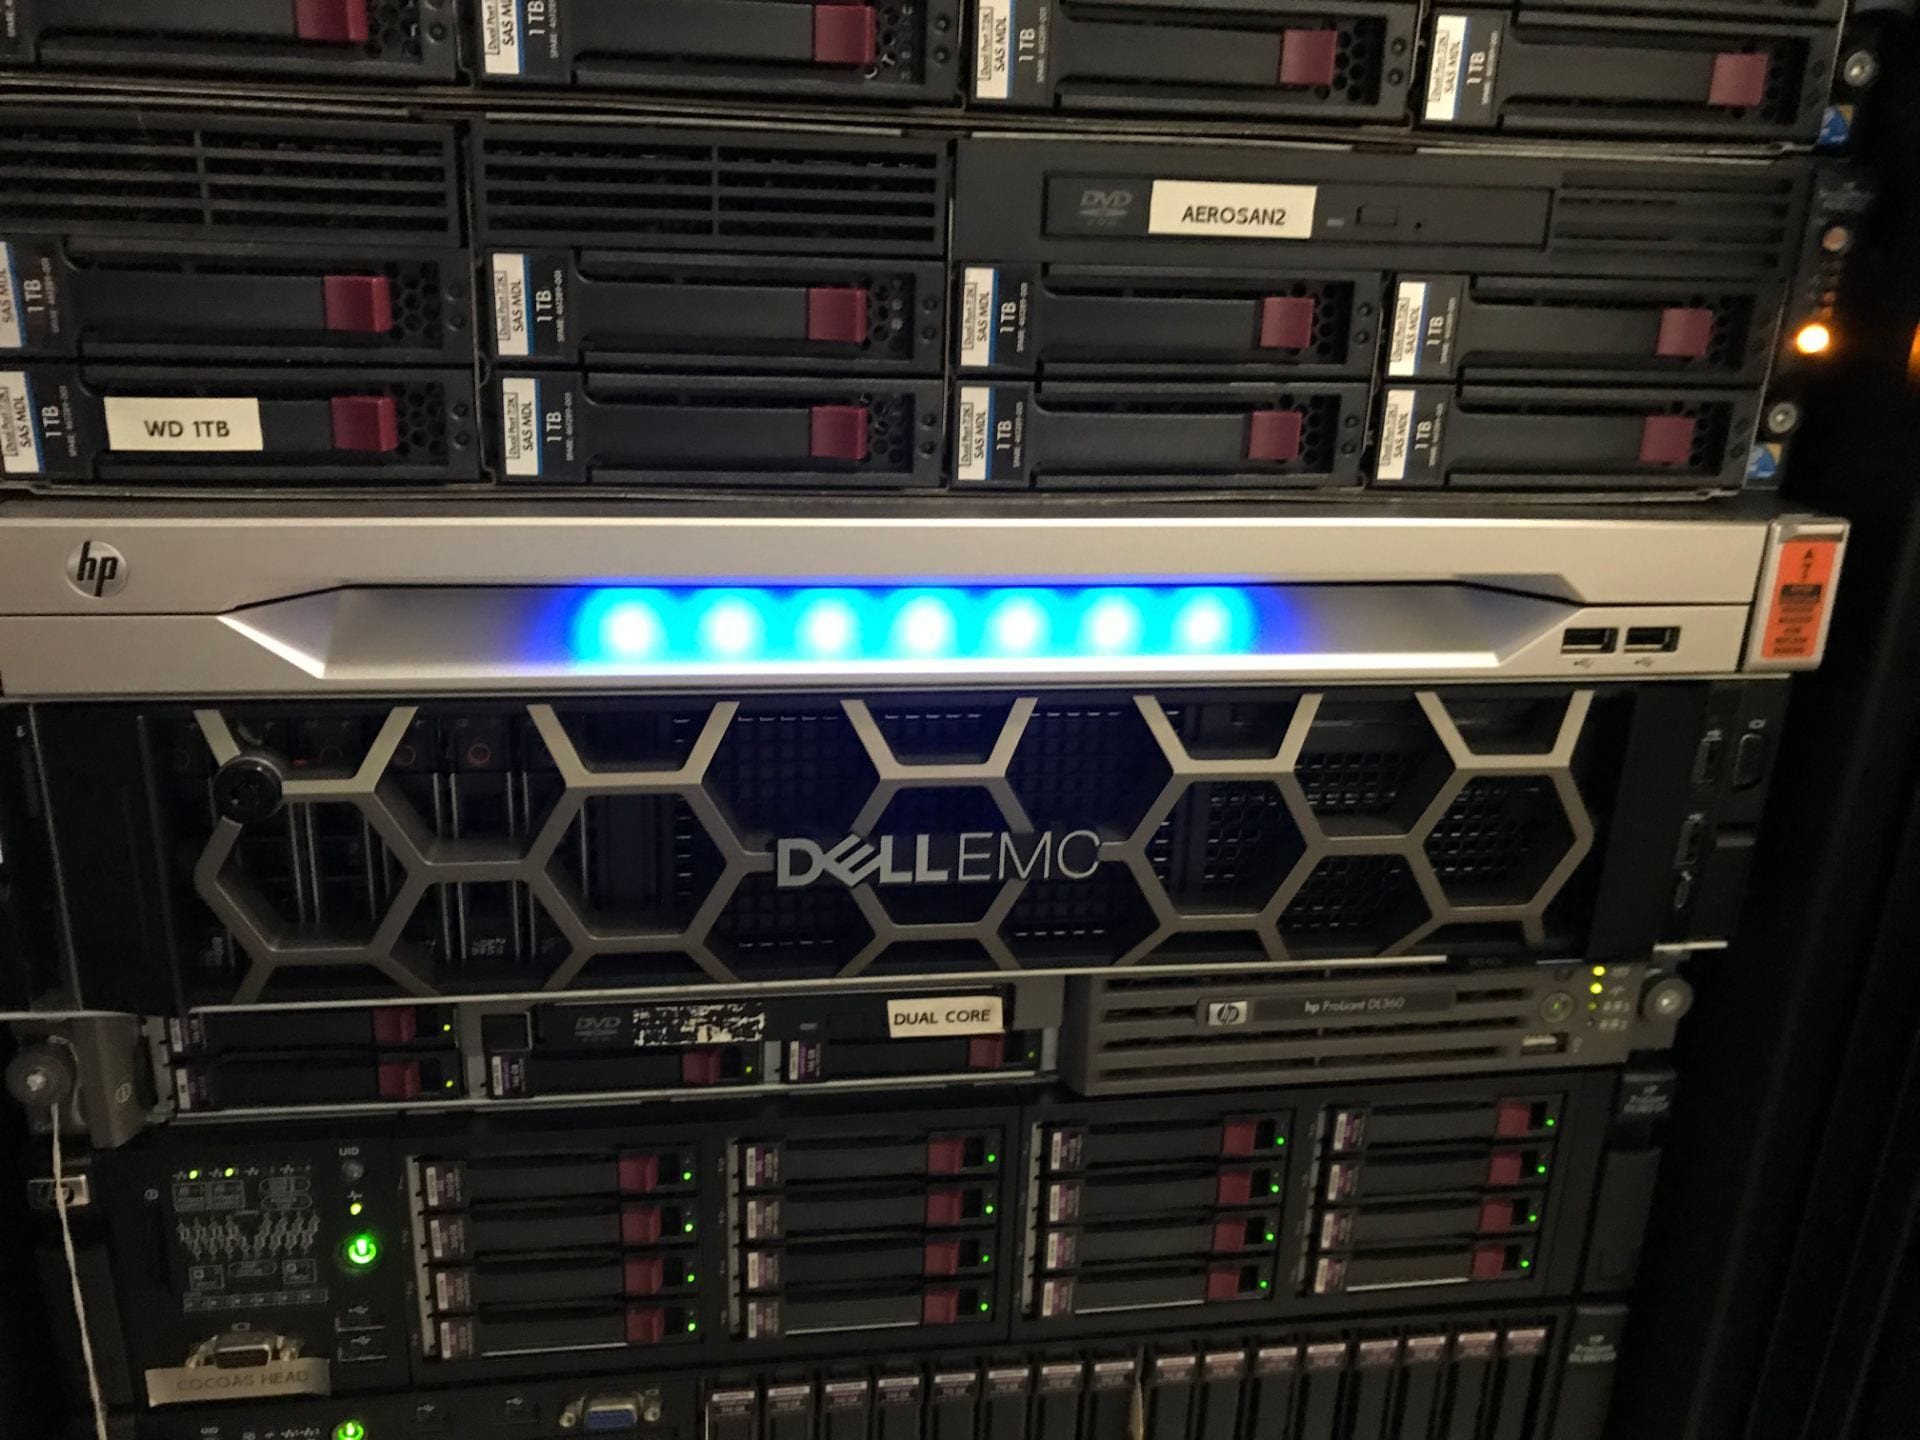 New Dell Server Installed! – Advanced Structures Laboratory